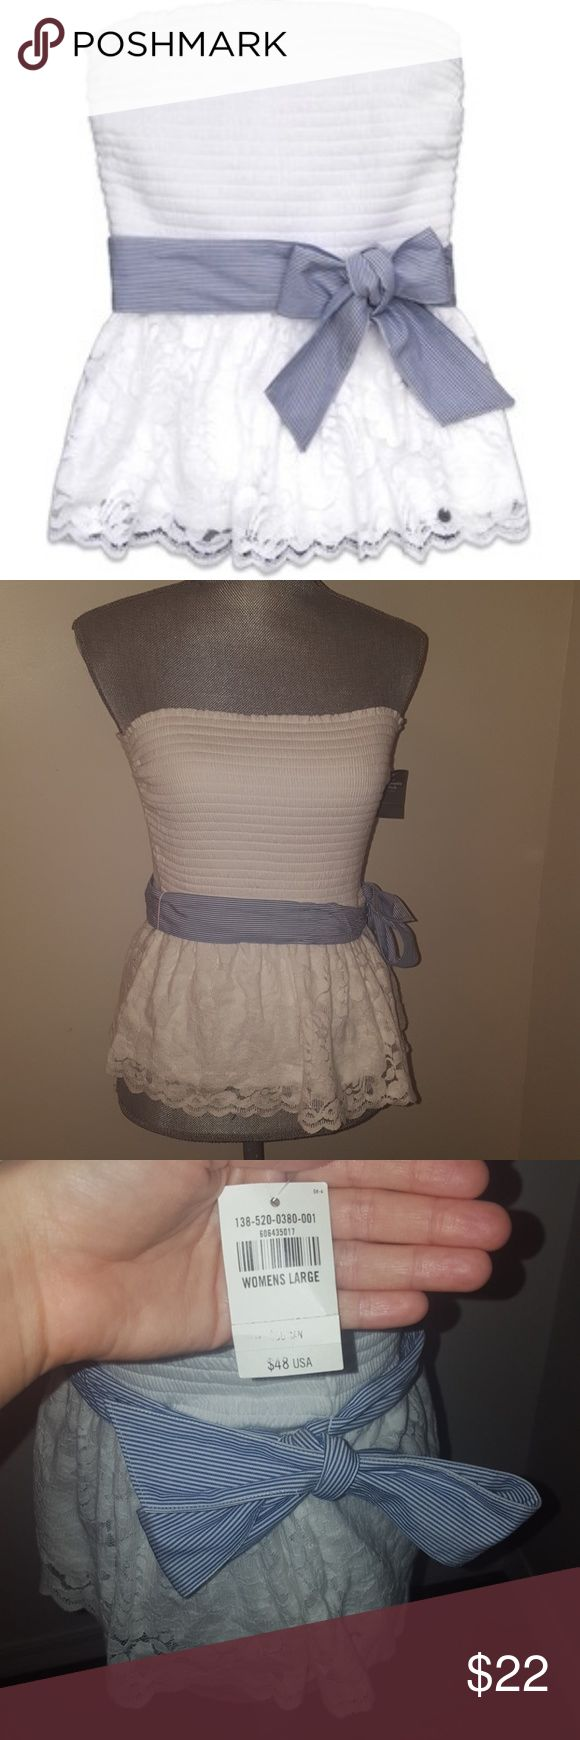 Abercrombie and Fitch lace strapless shirt! Adorable A&F white lace strapless shirt, with blue and white strip belt. Brand New, with tags. Perfect with navy shorts for this summer! Abercrombie & Fitch Tops Tank Tops